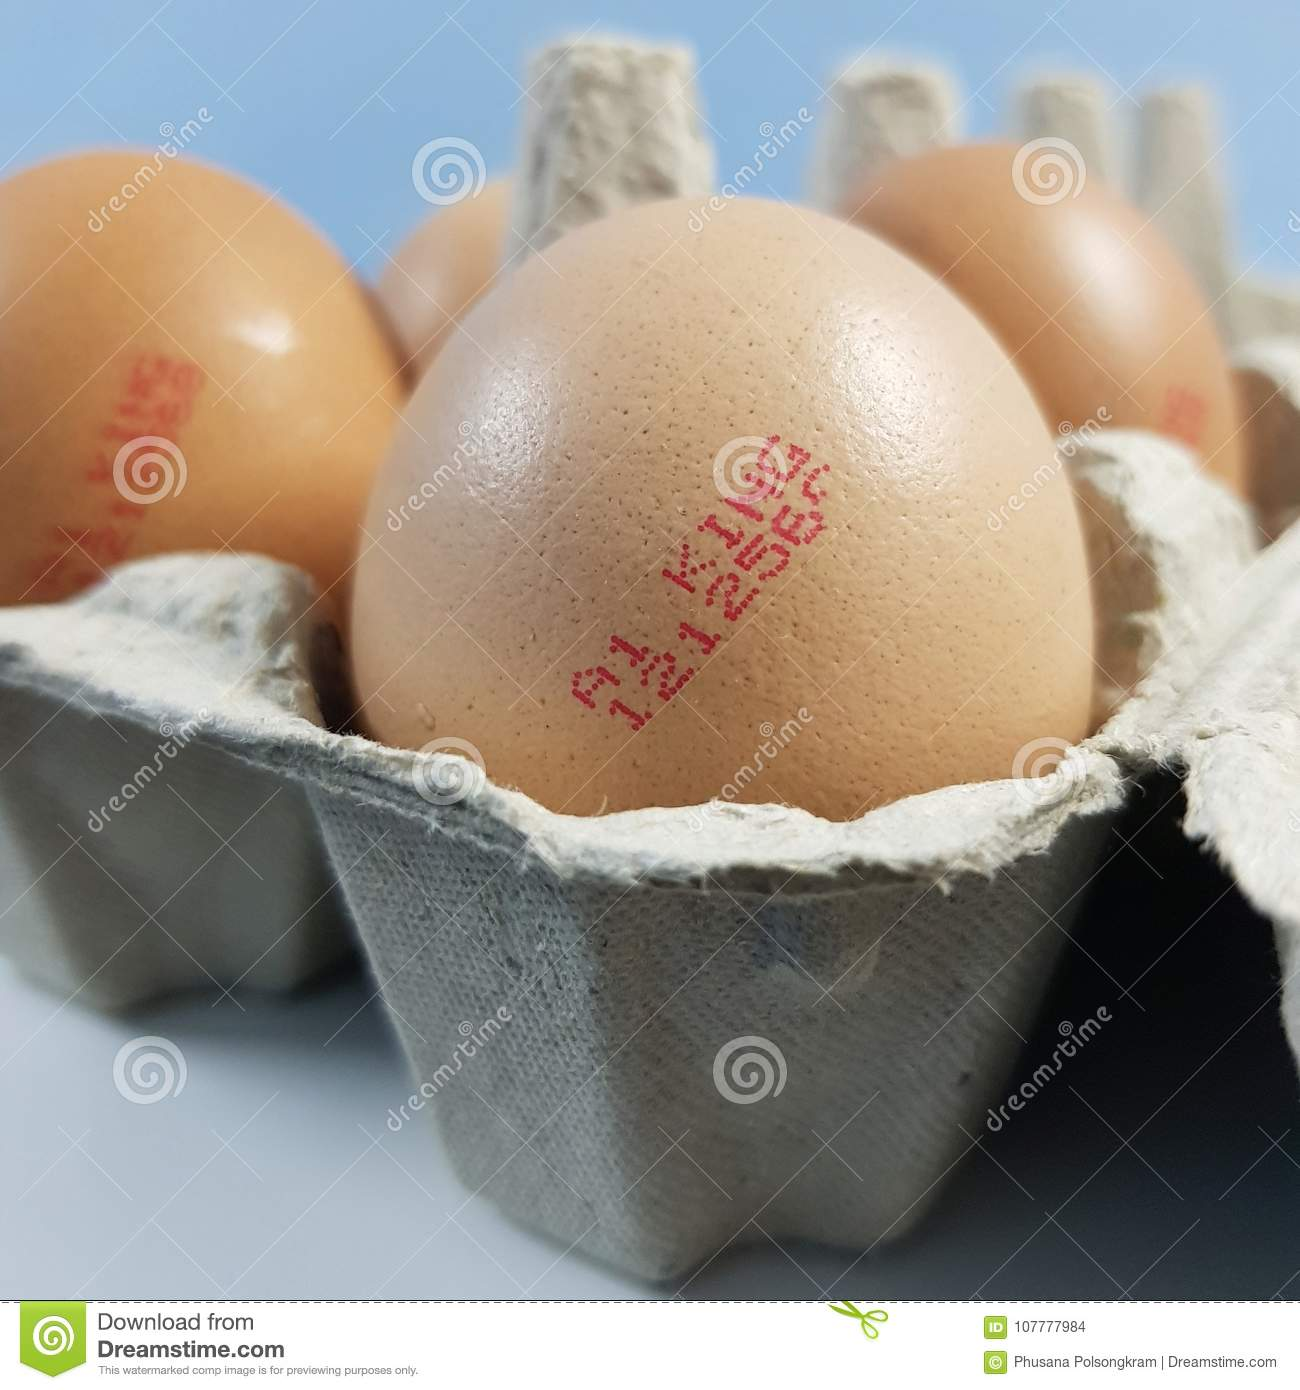 Sell Date Of Eggs How Fresh Are Your Eggs